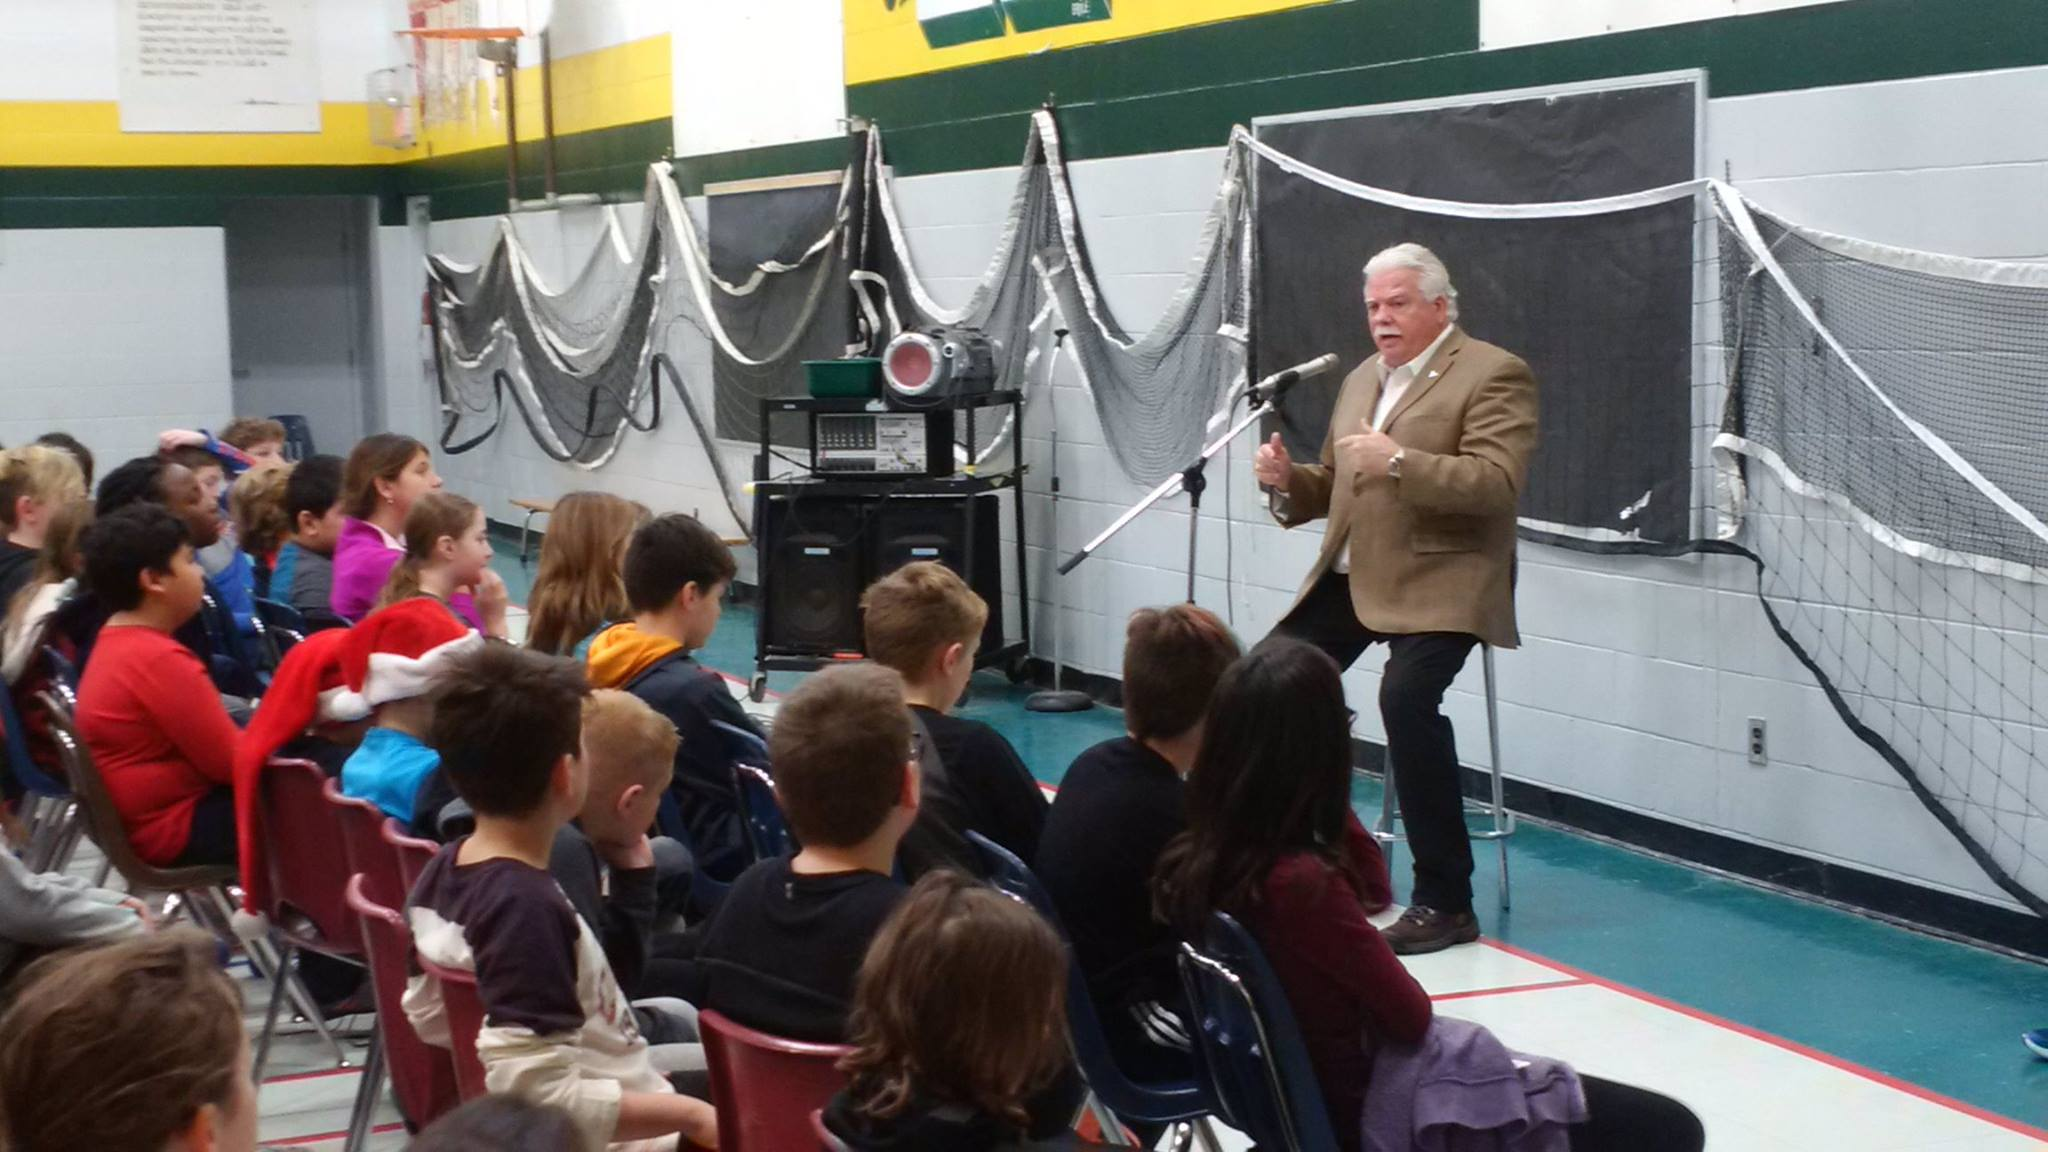 St._Piux_X_School_in_Tecumseh_grade_5_students_asking_about_Percy's_role_in_the_legislature..jpg